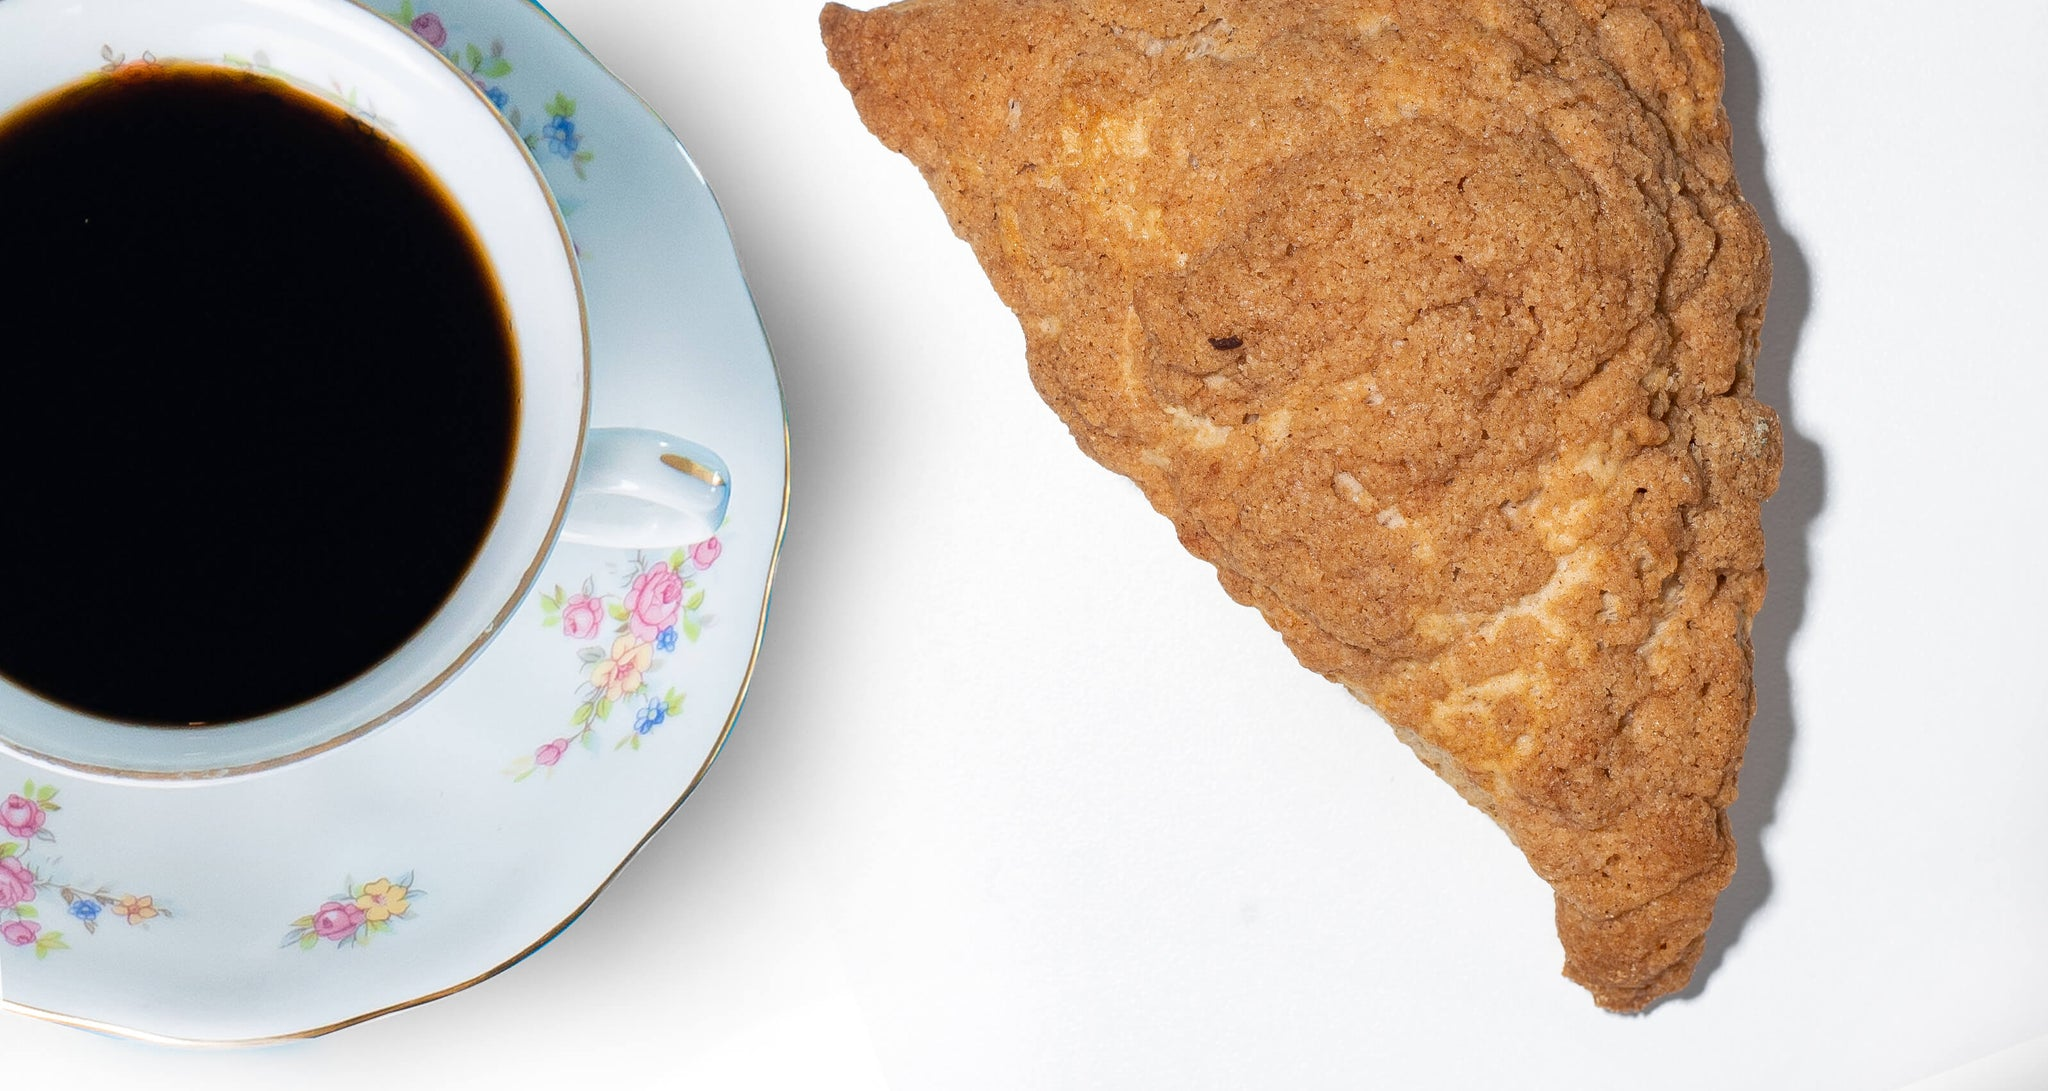 Why Doesn't Coffee Cake Contain Coffee?